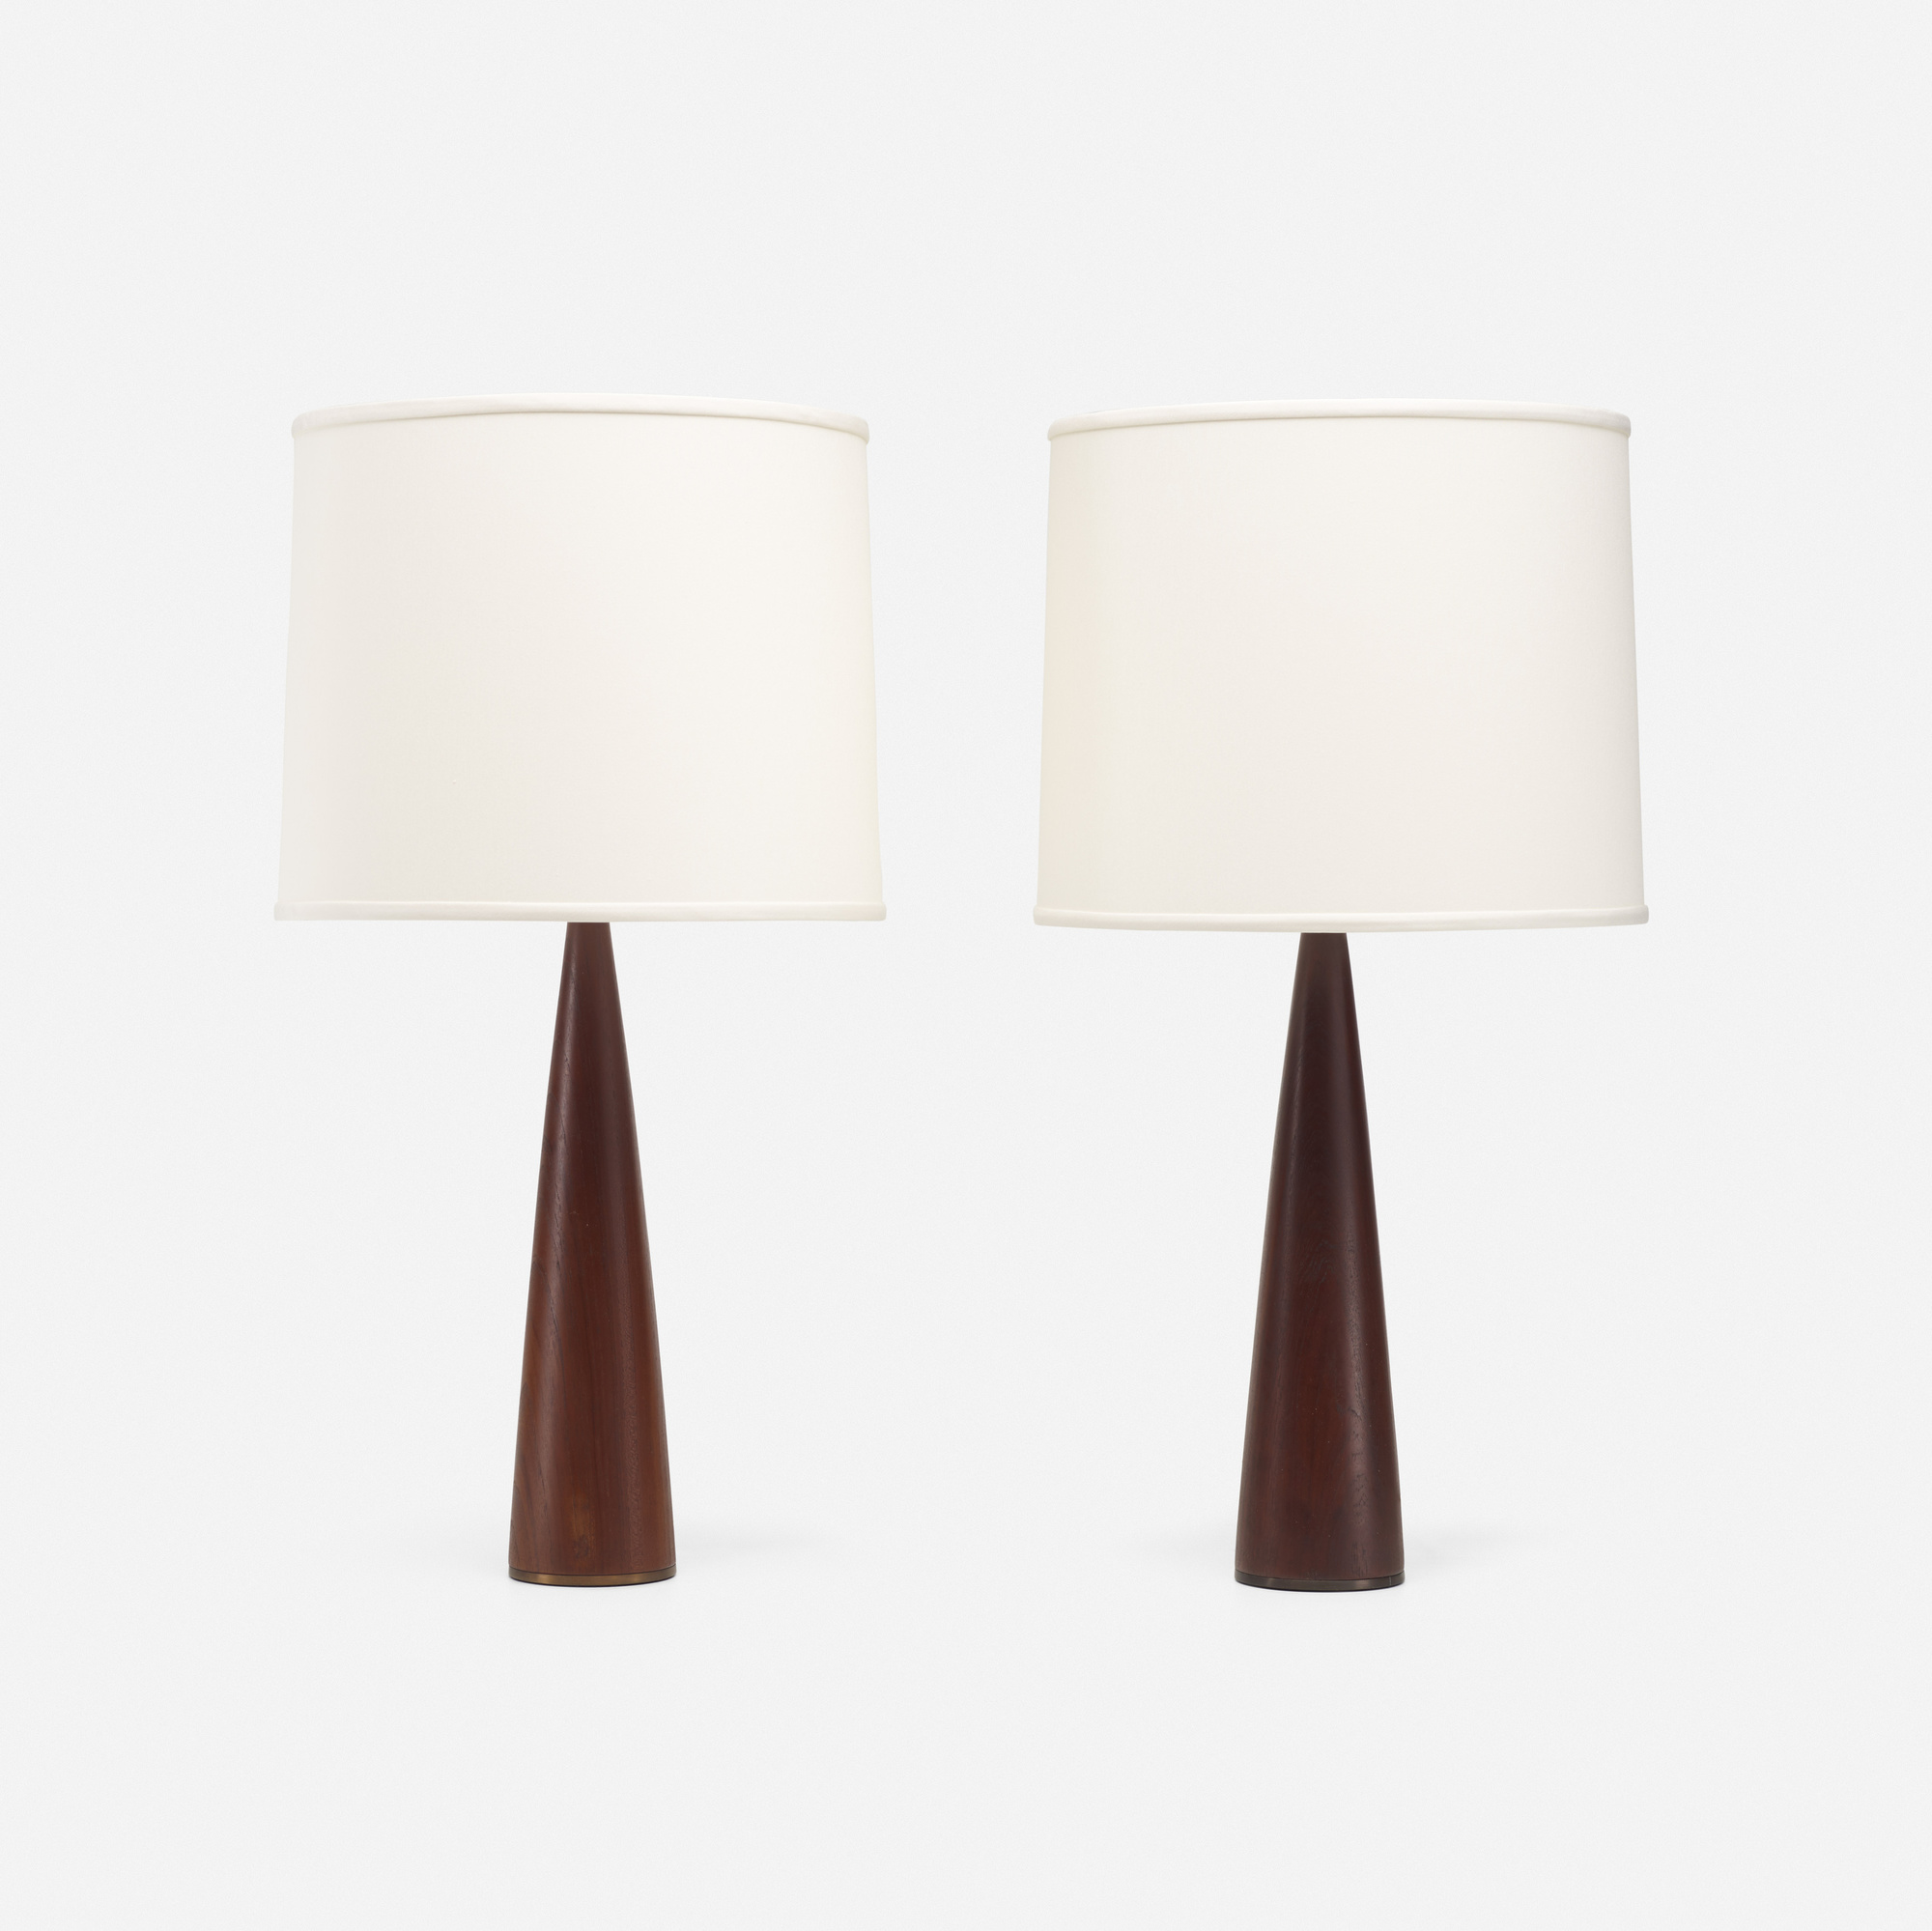 148: Modern / table lamps, pair (1 of 2)